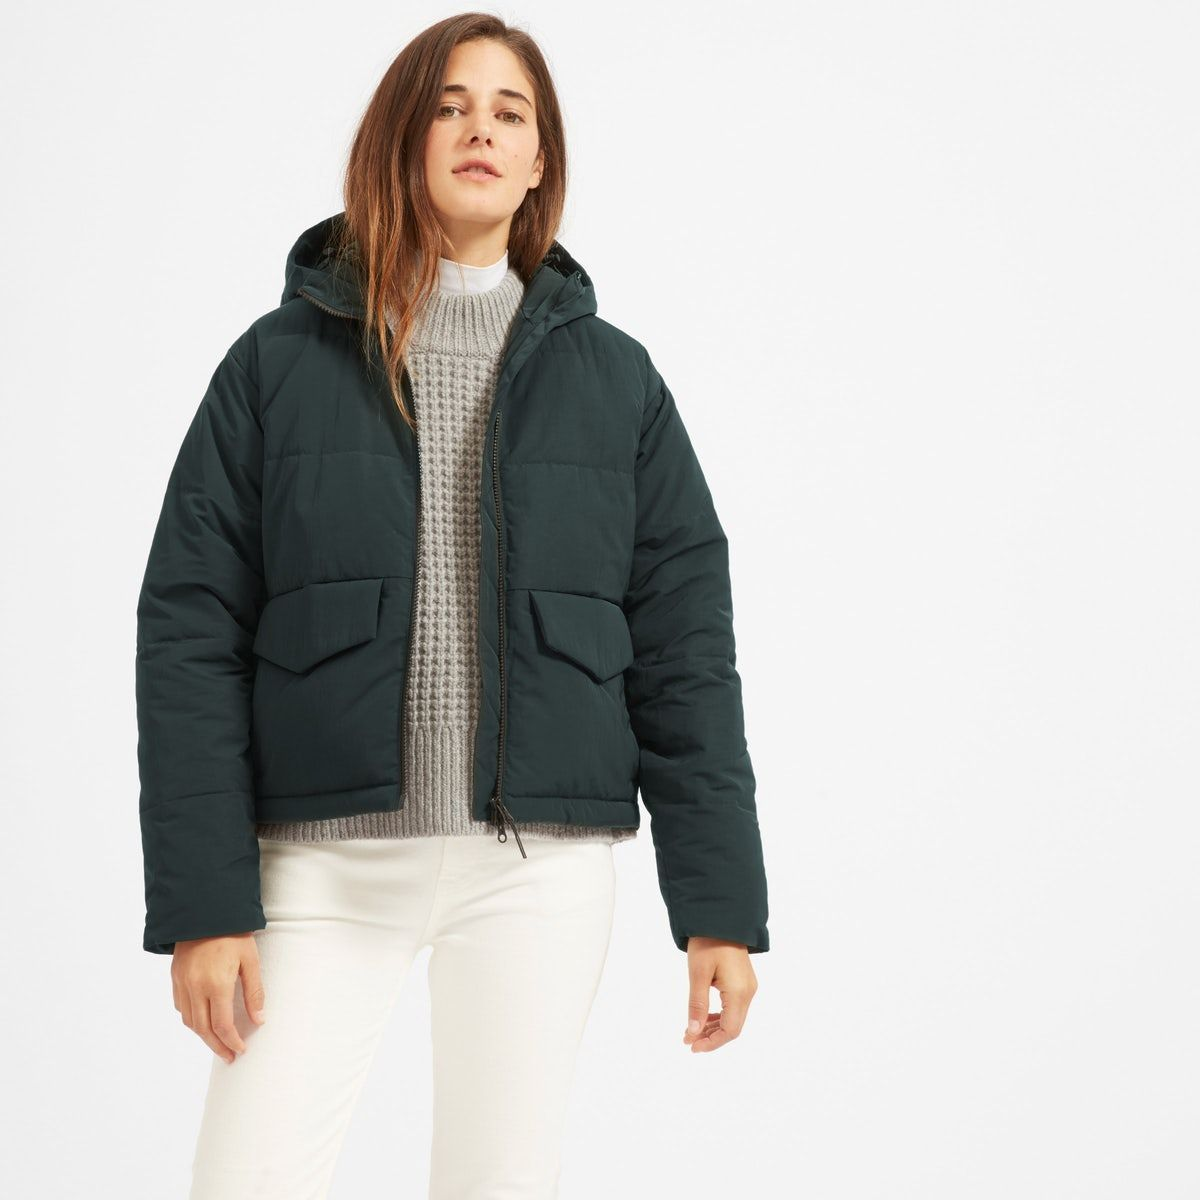 A Cooler Puffer Our Short Puffer Jacket Features A Boxy Relaxed Shape A Hood And Flap Pockets Plus It S Filled With P Short Puffer Jacket Fashion Jackets [ 1200 x 1200 Pixel ]